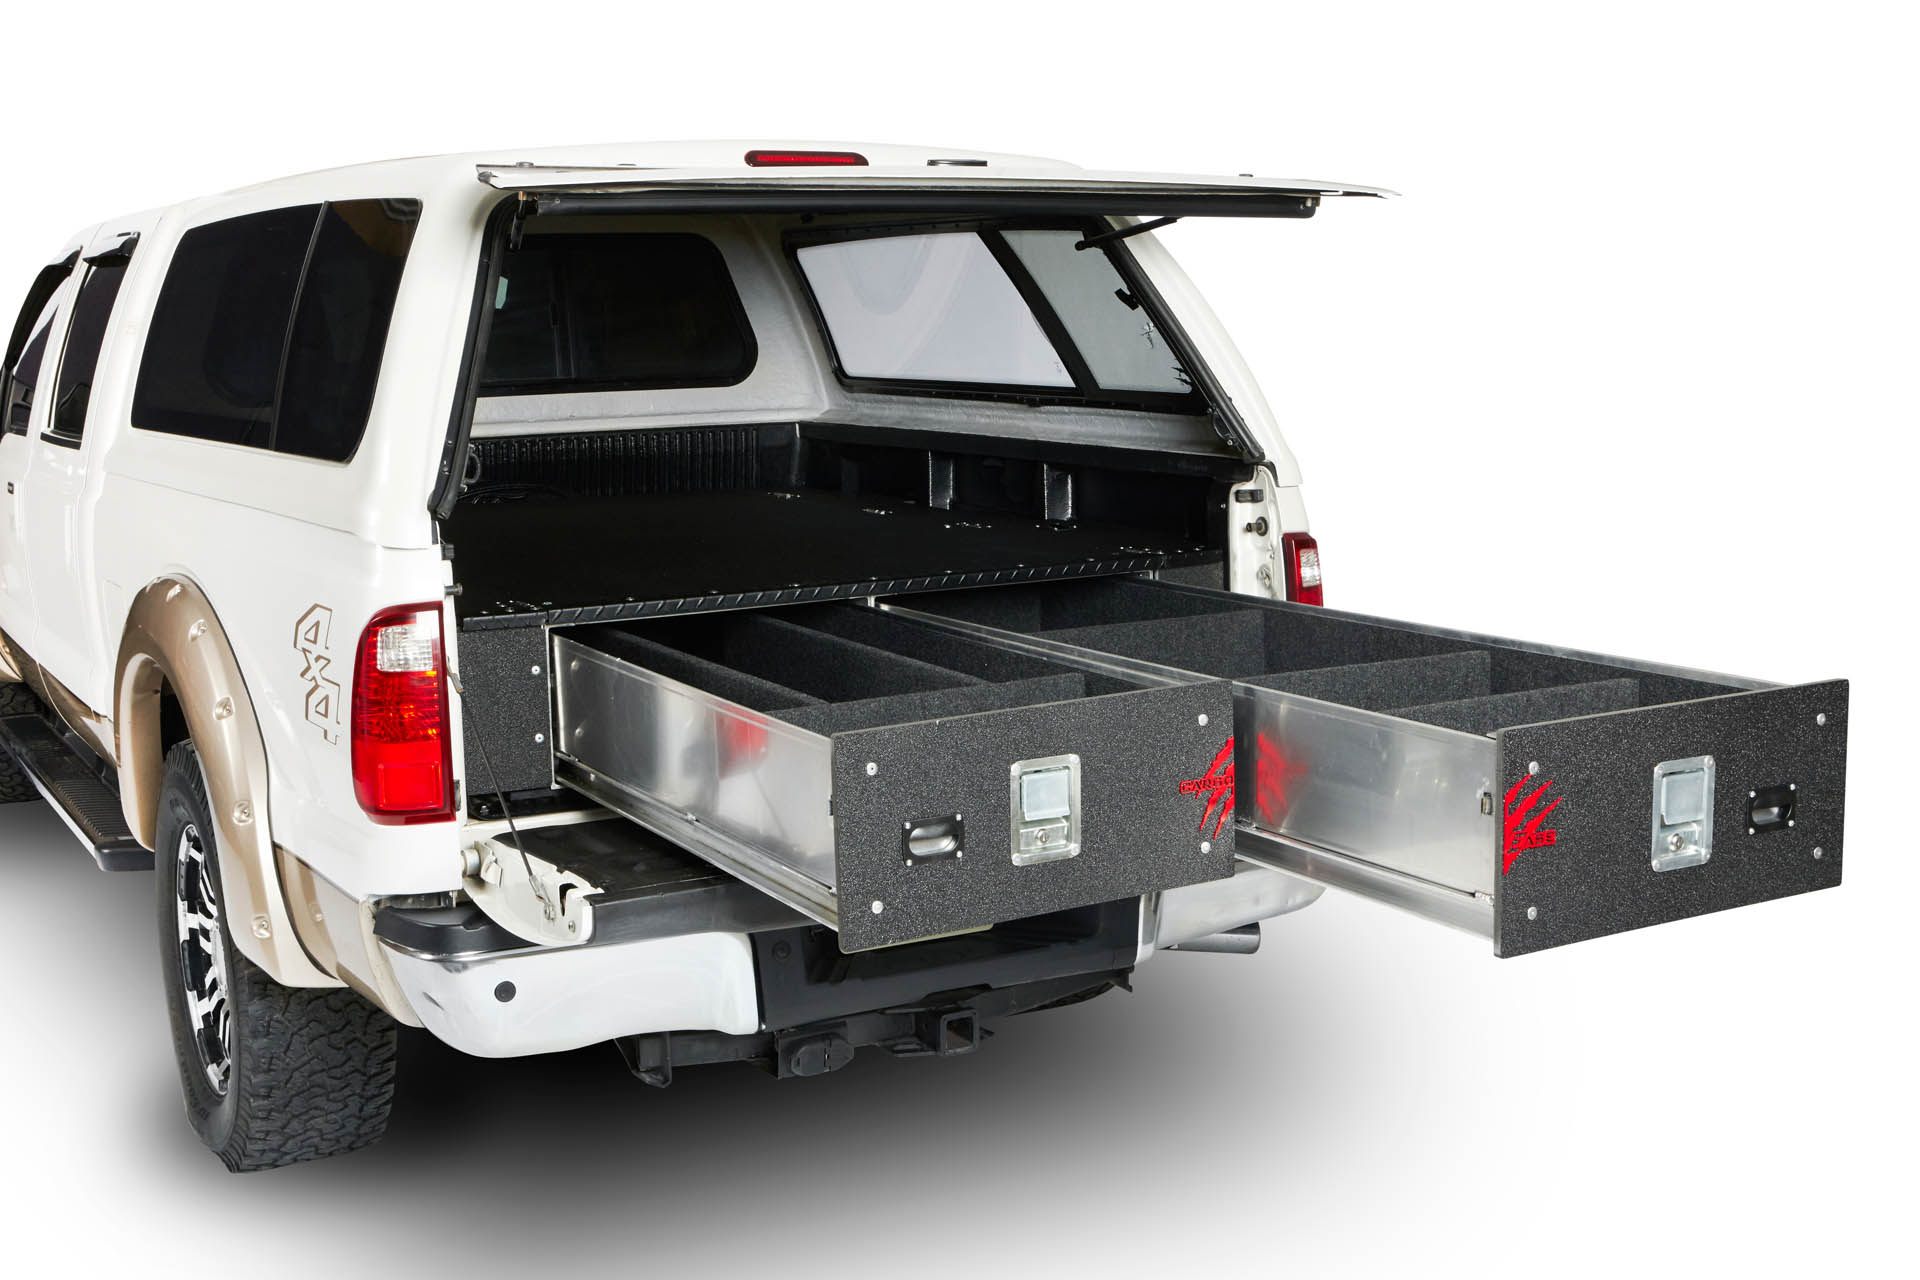 Cargo Ease Cargo Locker Base 9 Inch Single Drawer System 07-Pres Toyota Tundra Crew Max